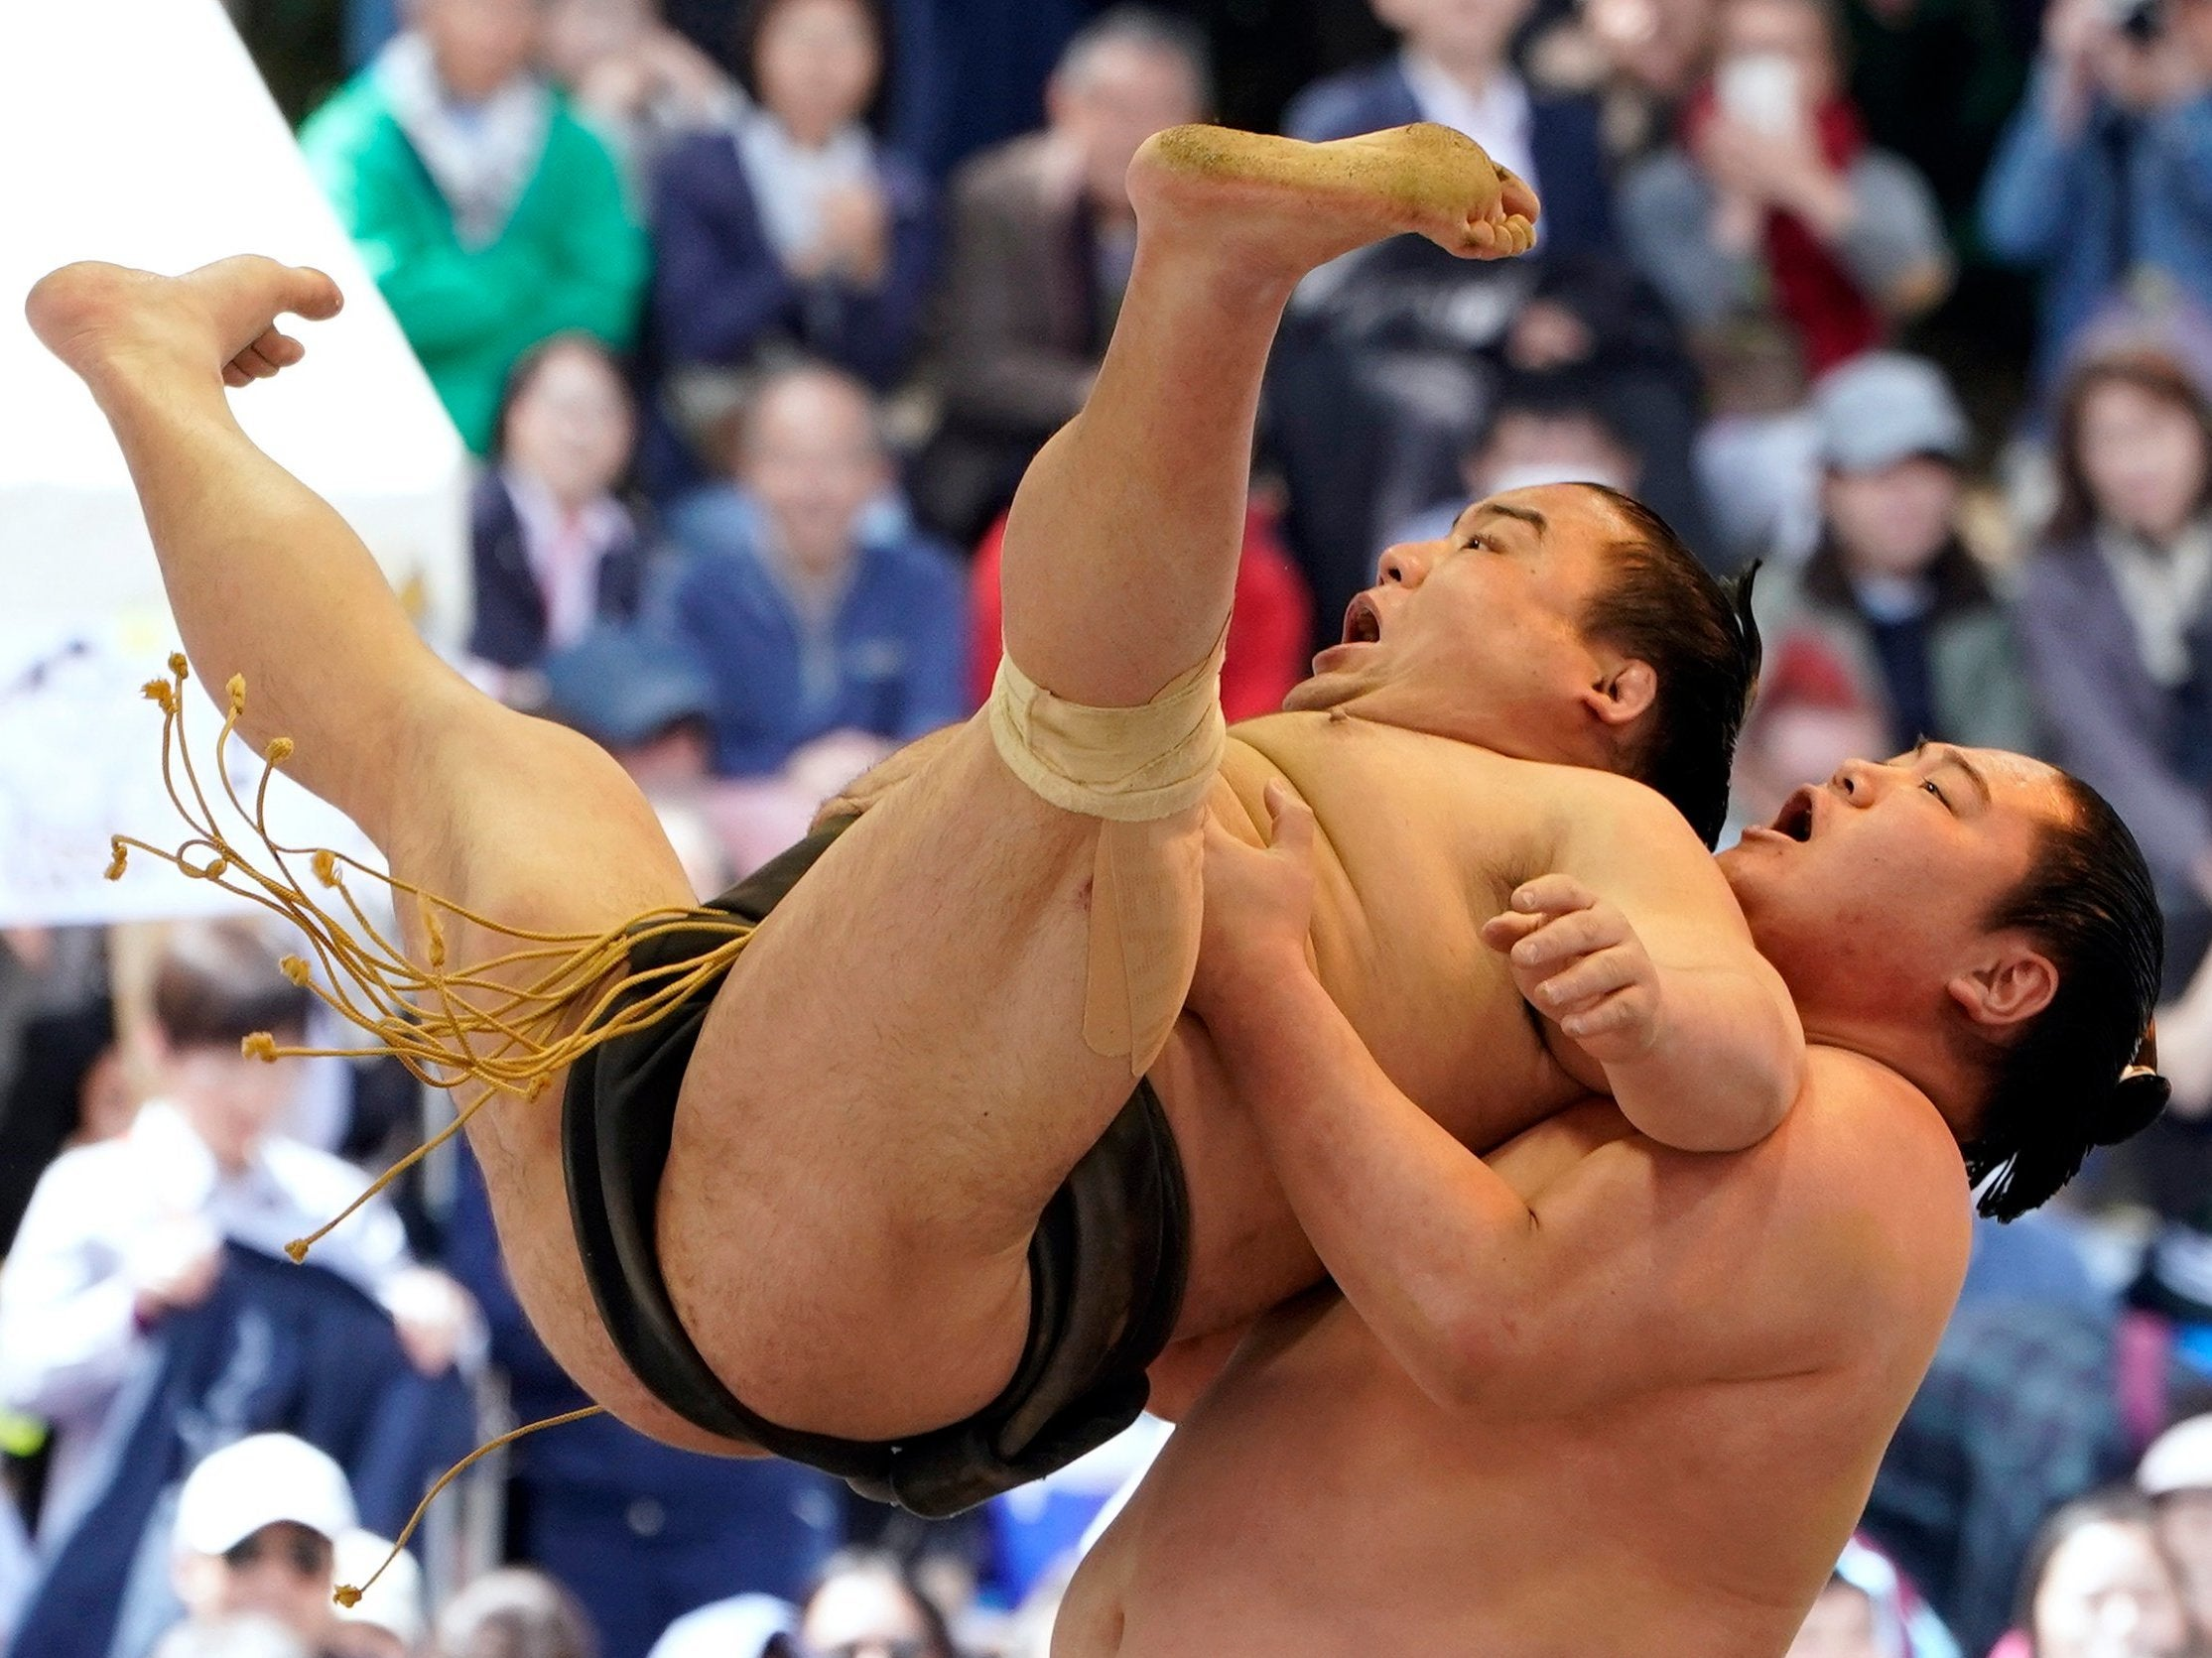 Trump 'could present trophy at sumo wrestling tournament in Japan'